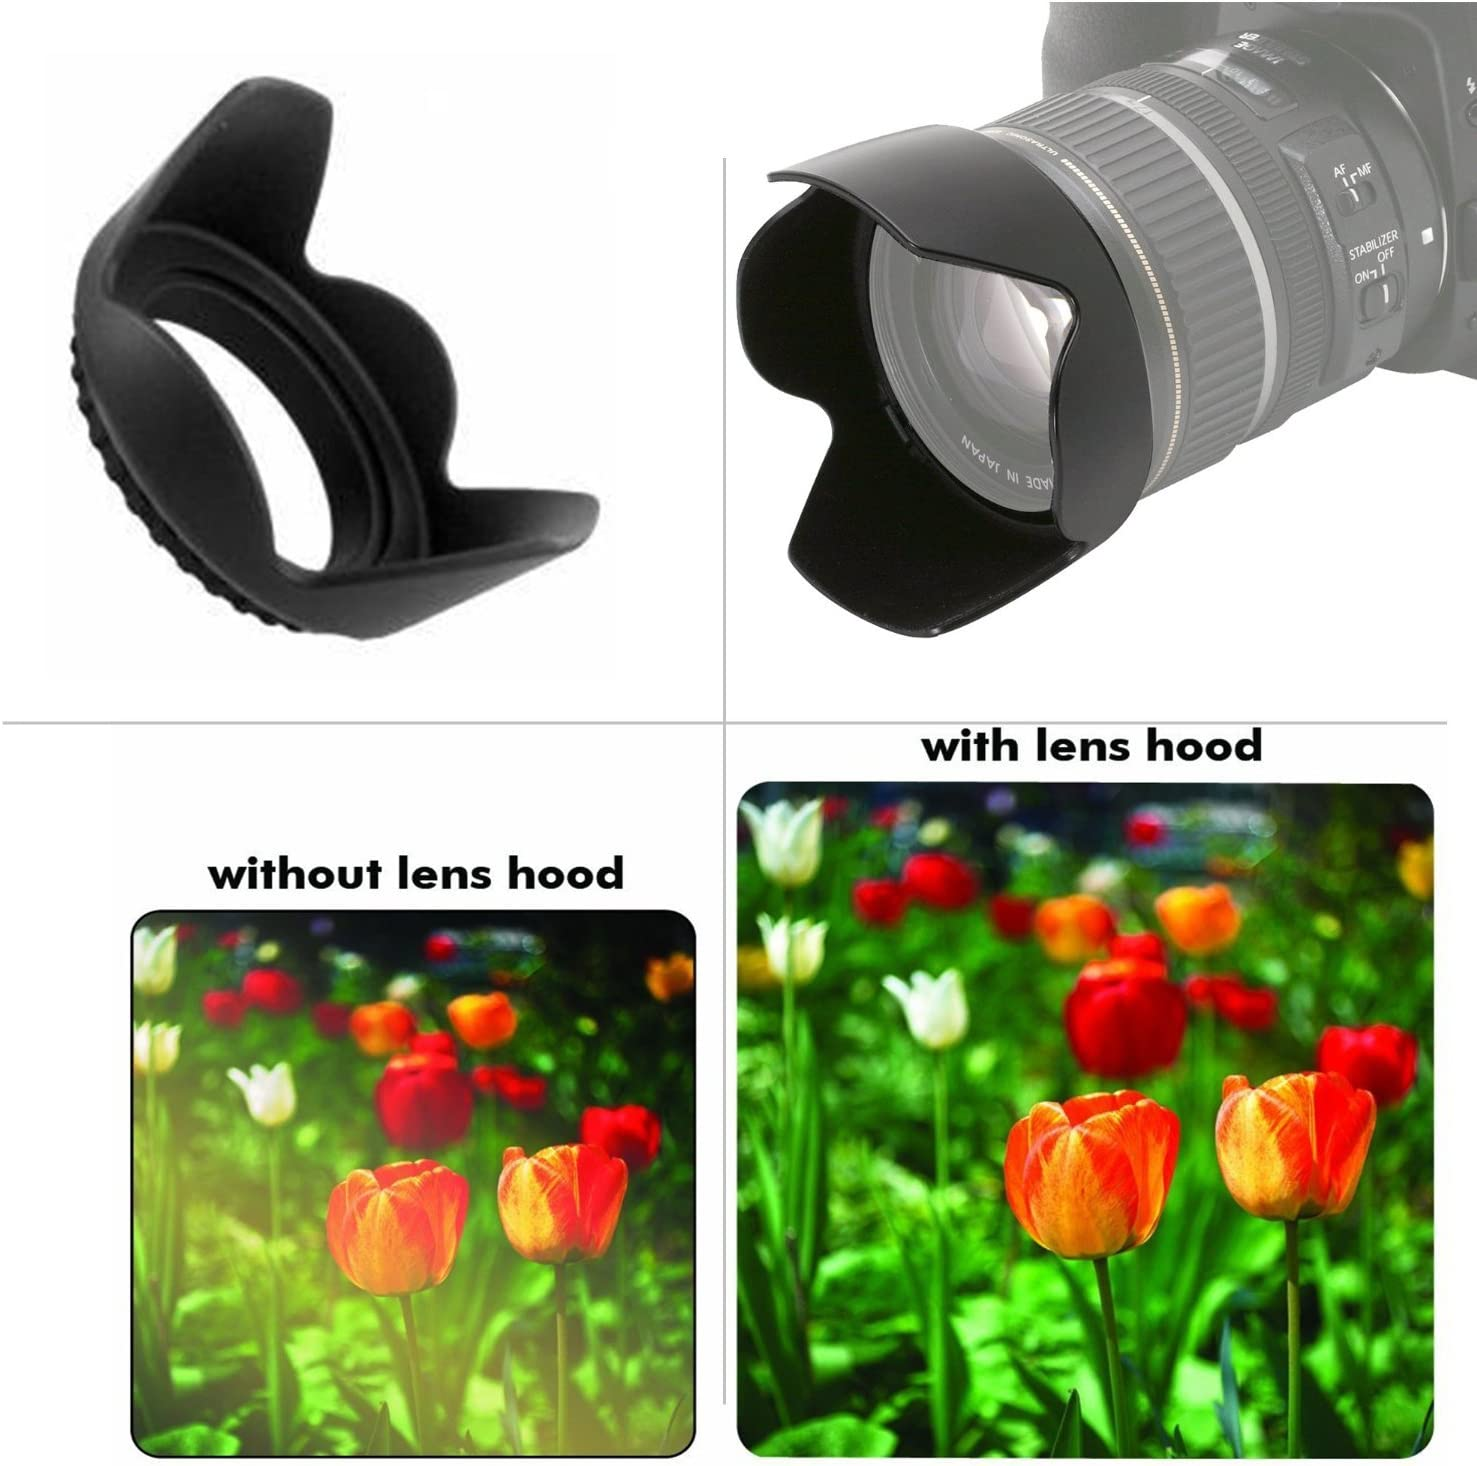 Canon EOS Rebel T7i Pro Digital Lens Hood + Nw Direct Microfiber Cleaning Cloth. Flower Design 52mm